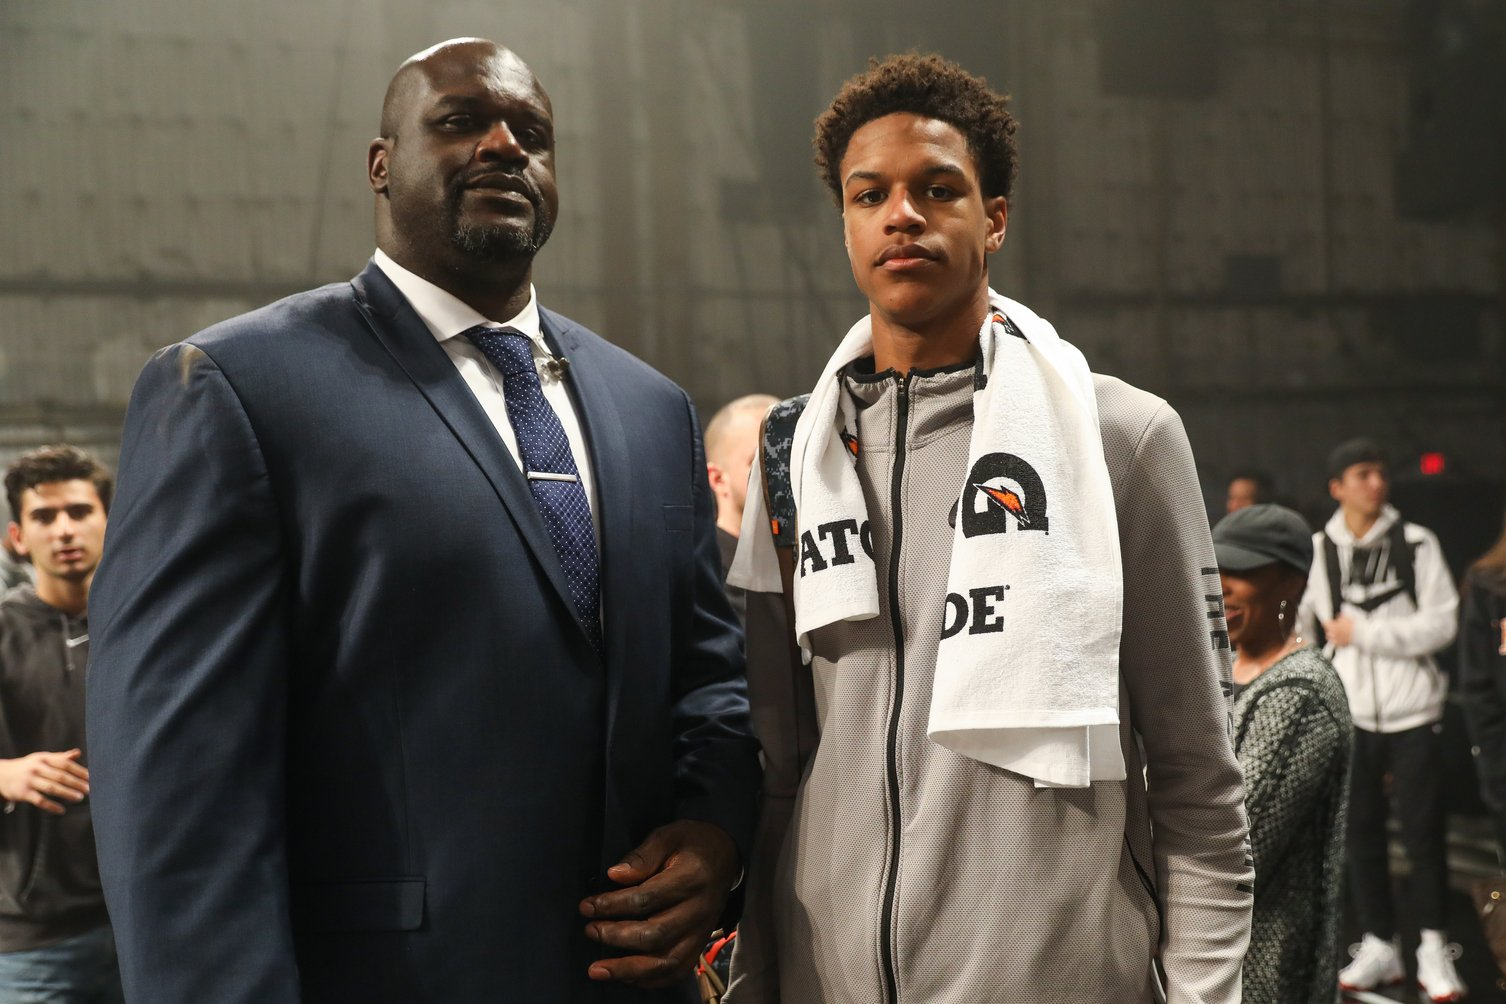 Shaquille O'Neal poses with his son Shareef O'Neal at the Jordan Brand Future of Flight Showcase on January 25, 2018 in Studio City, California | Photo: GettyImages